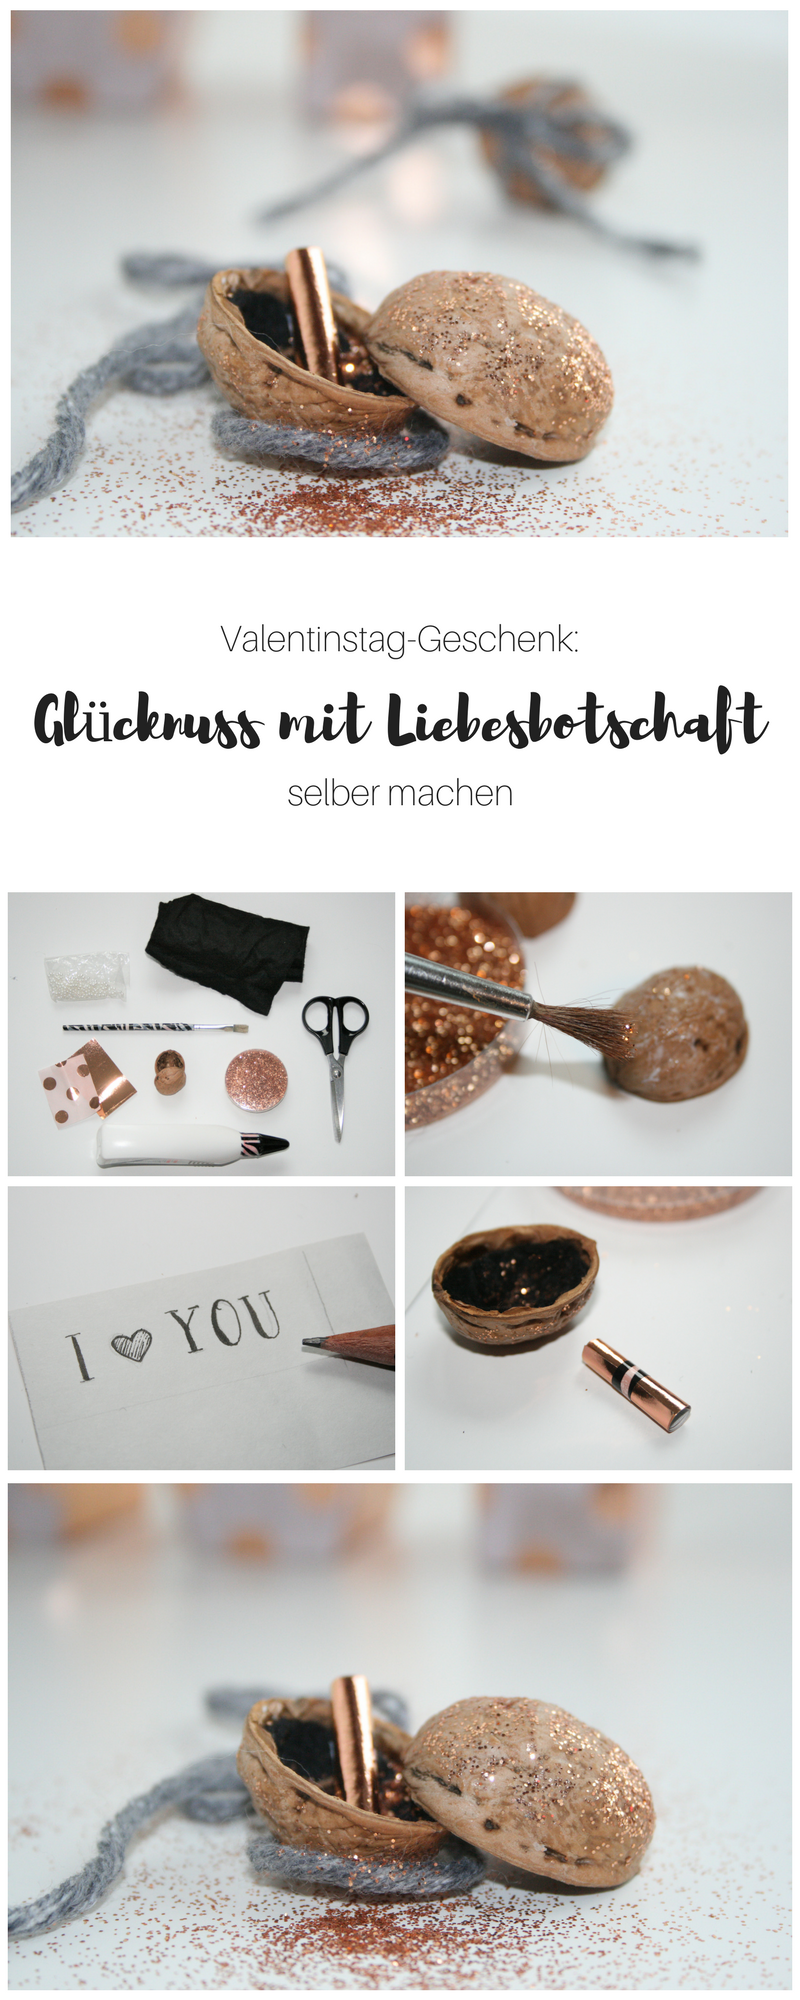 gl cksnuss mit liebesbotschaft zum valentinstag diy. Black Bedroom Furniture Sets. Home Design Ideas